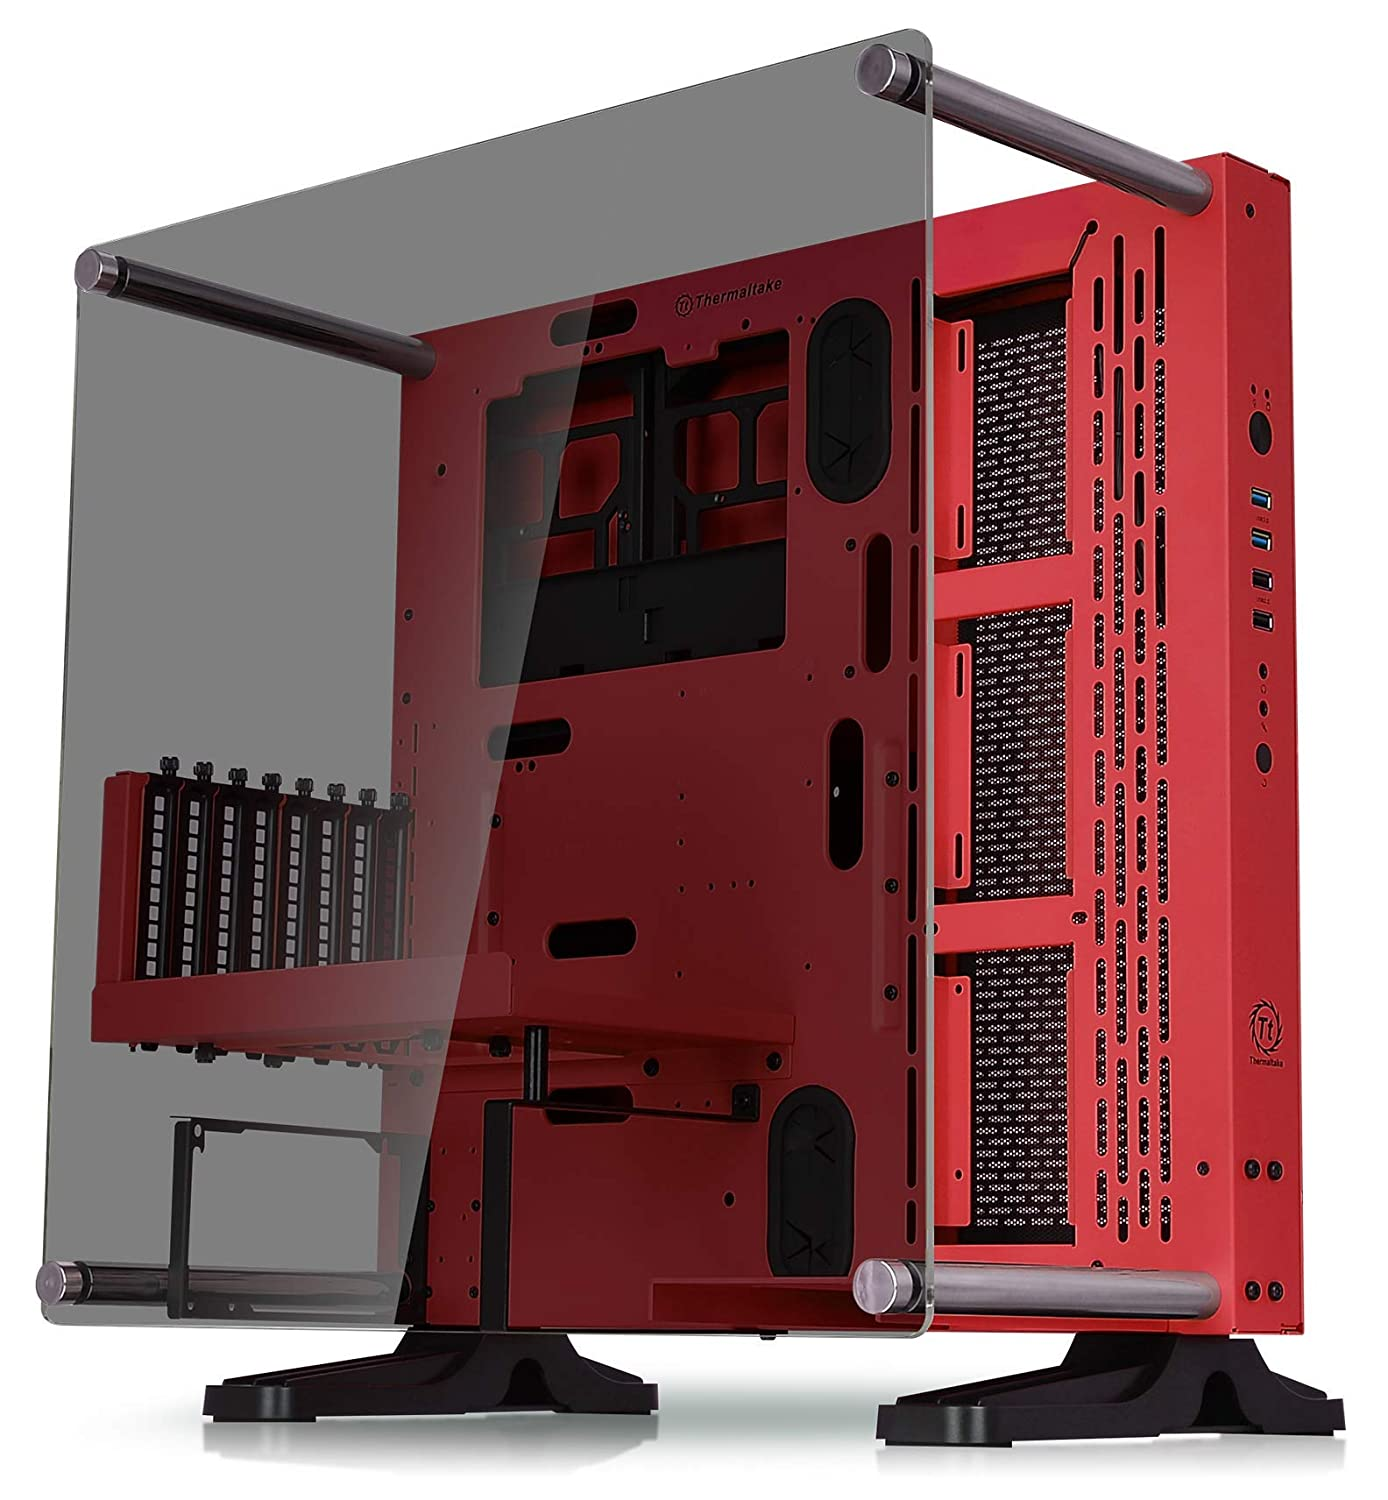 Thermaltake Core P3 ATX Tempered Glass Gaming Computer Case Chassis, Open Frame Panoramic Viewing, Glass Wall-Mount, Riser Cable Included, Snow Edition, CA-1G4-00M6WN-05